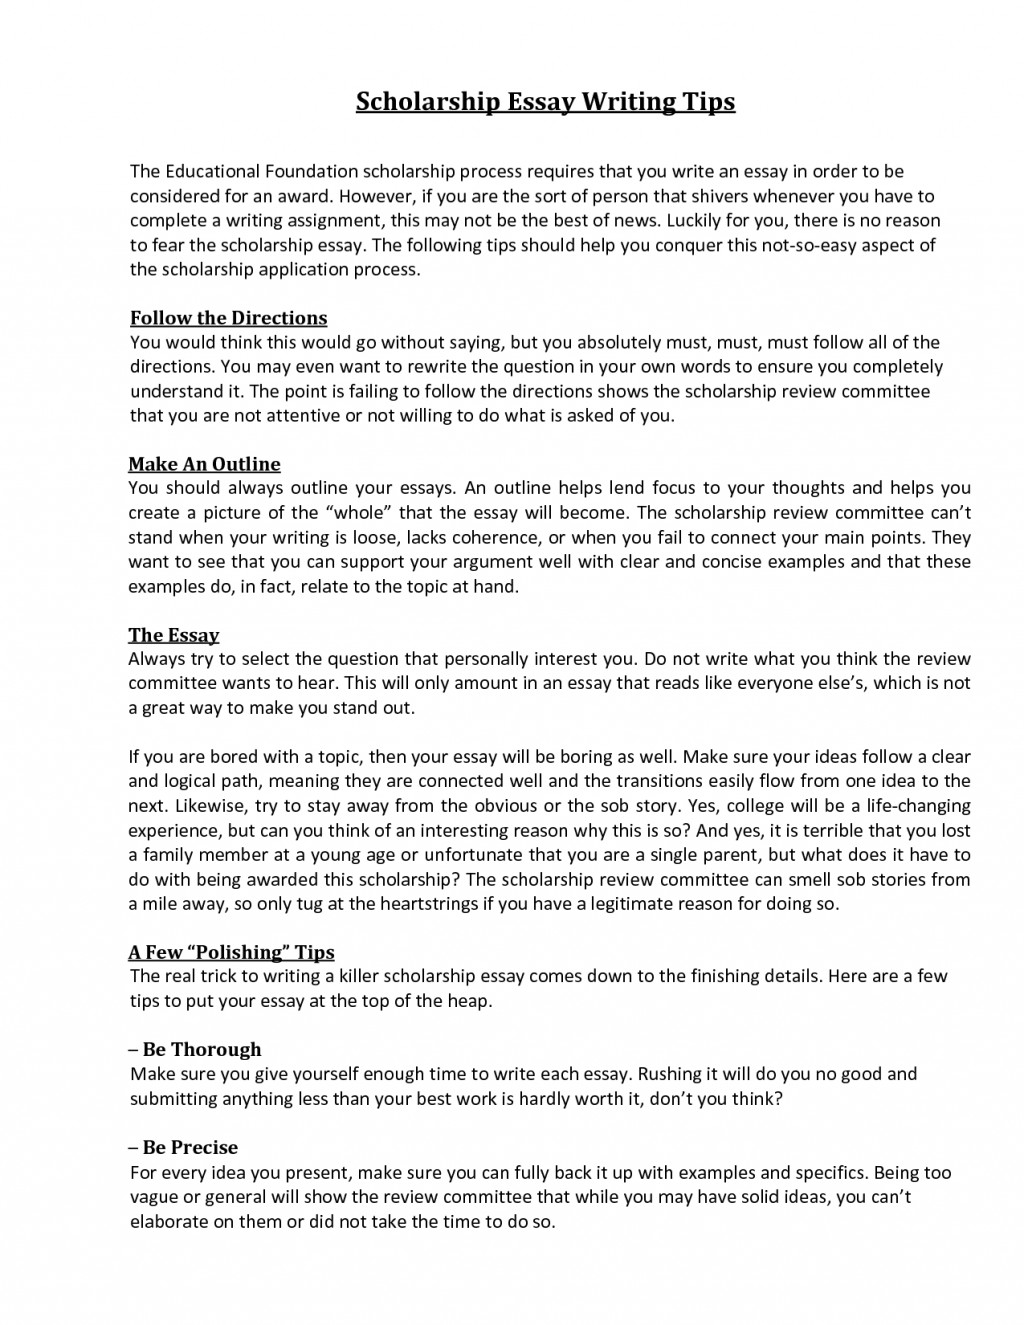 006 Essay Example Ziolxujgwq Scholarship Stunning Template Structure Format Examples Guidelines Large